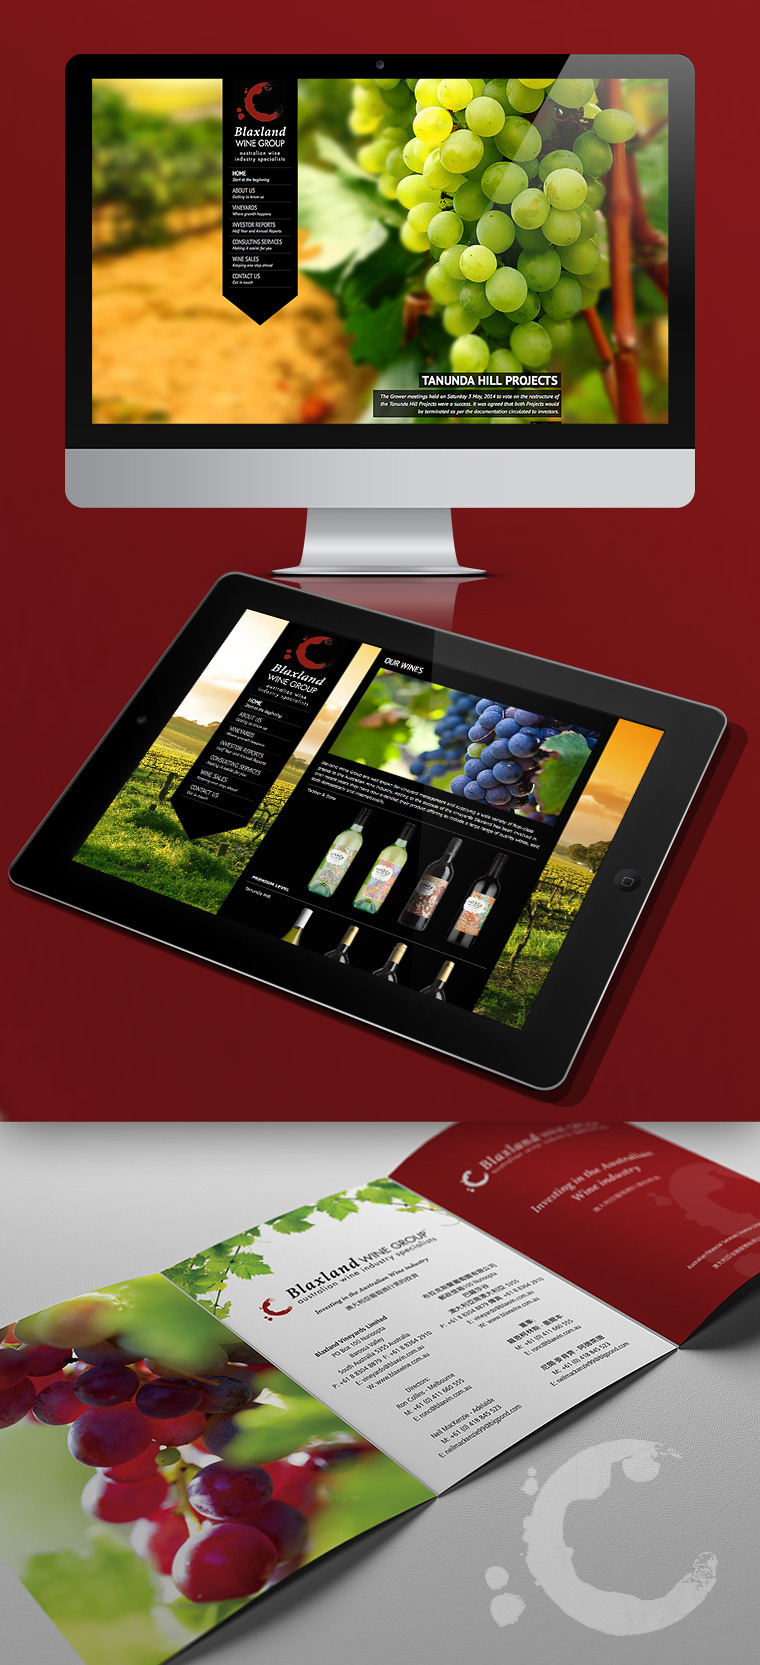 NRG Advertising Blaxland Wine Group Website